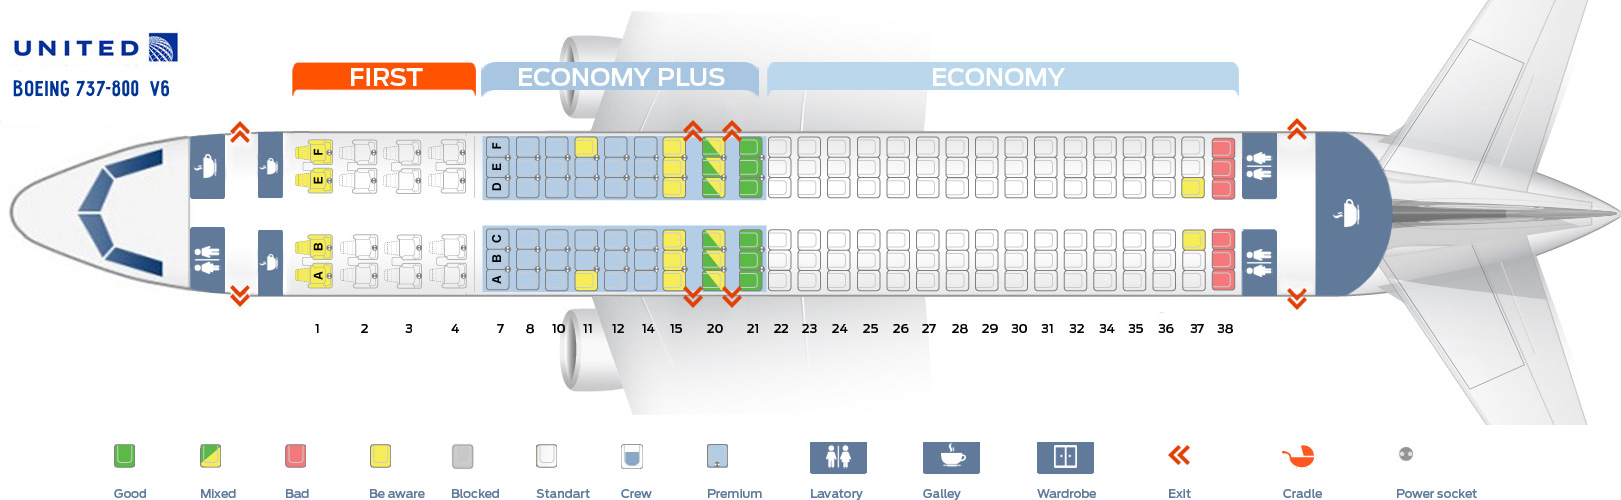 Seat_map_United_Airlines_Boeing_737_800_v6